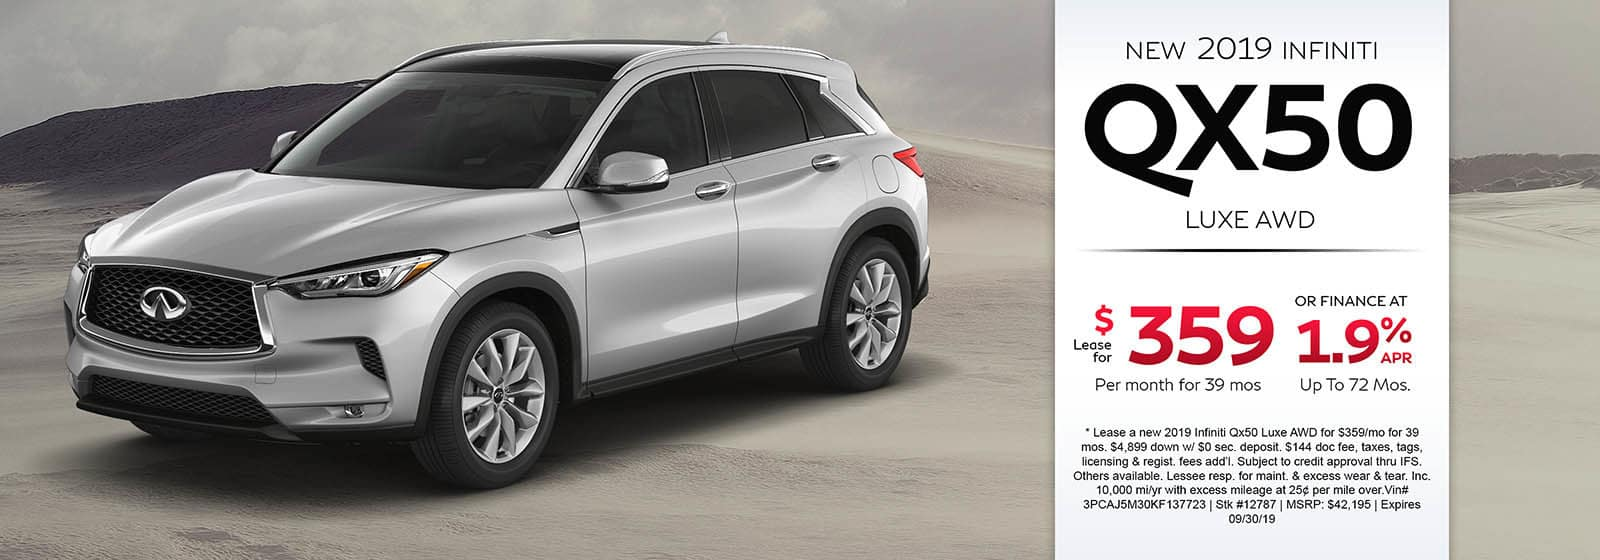 Lease a new 2019 INFINITI QX50 Luxe AWD for $359 a month for 39 months. Or get special 1.9% APR financing for up to 72 months